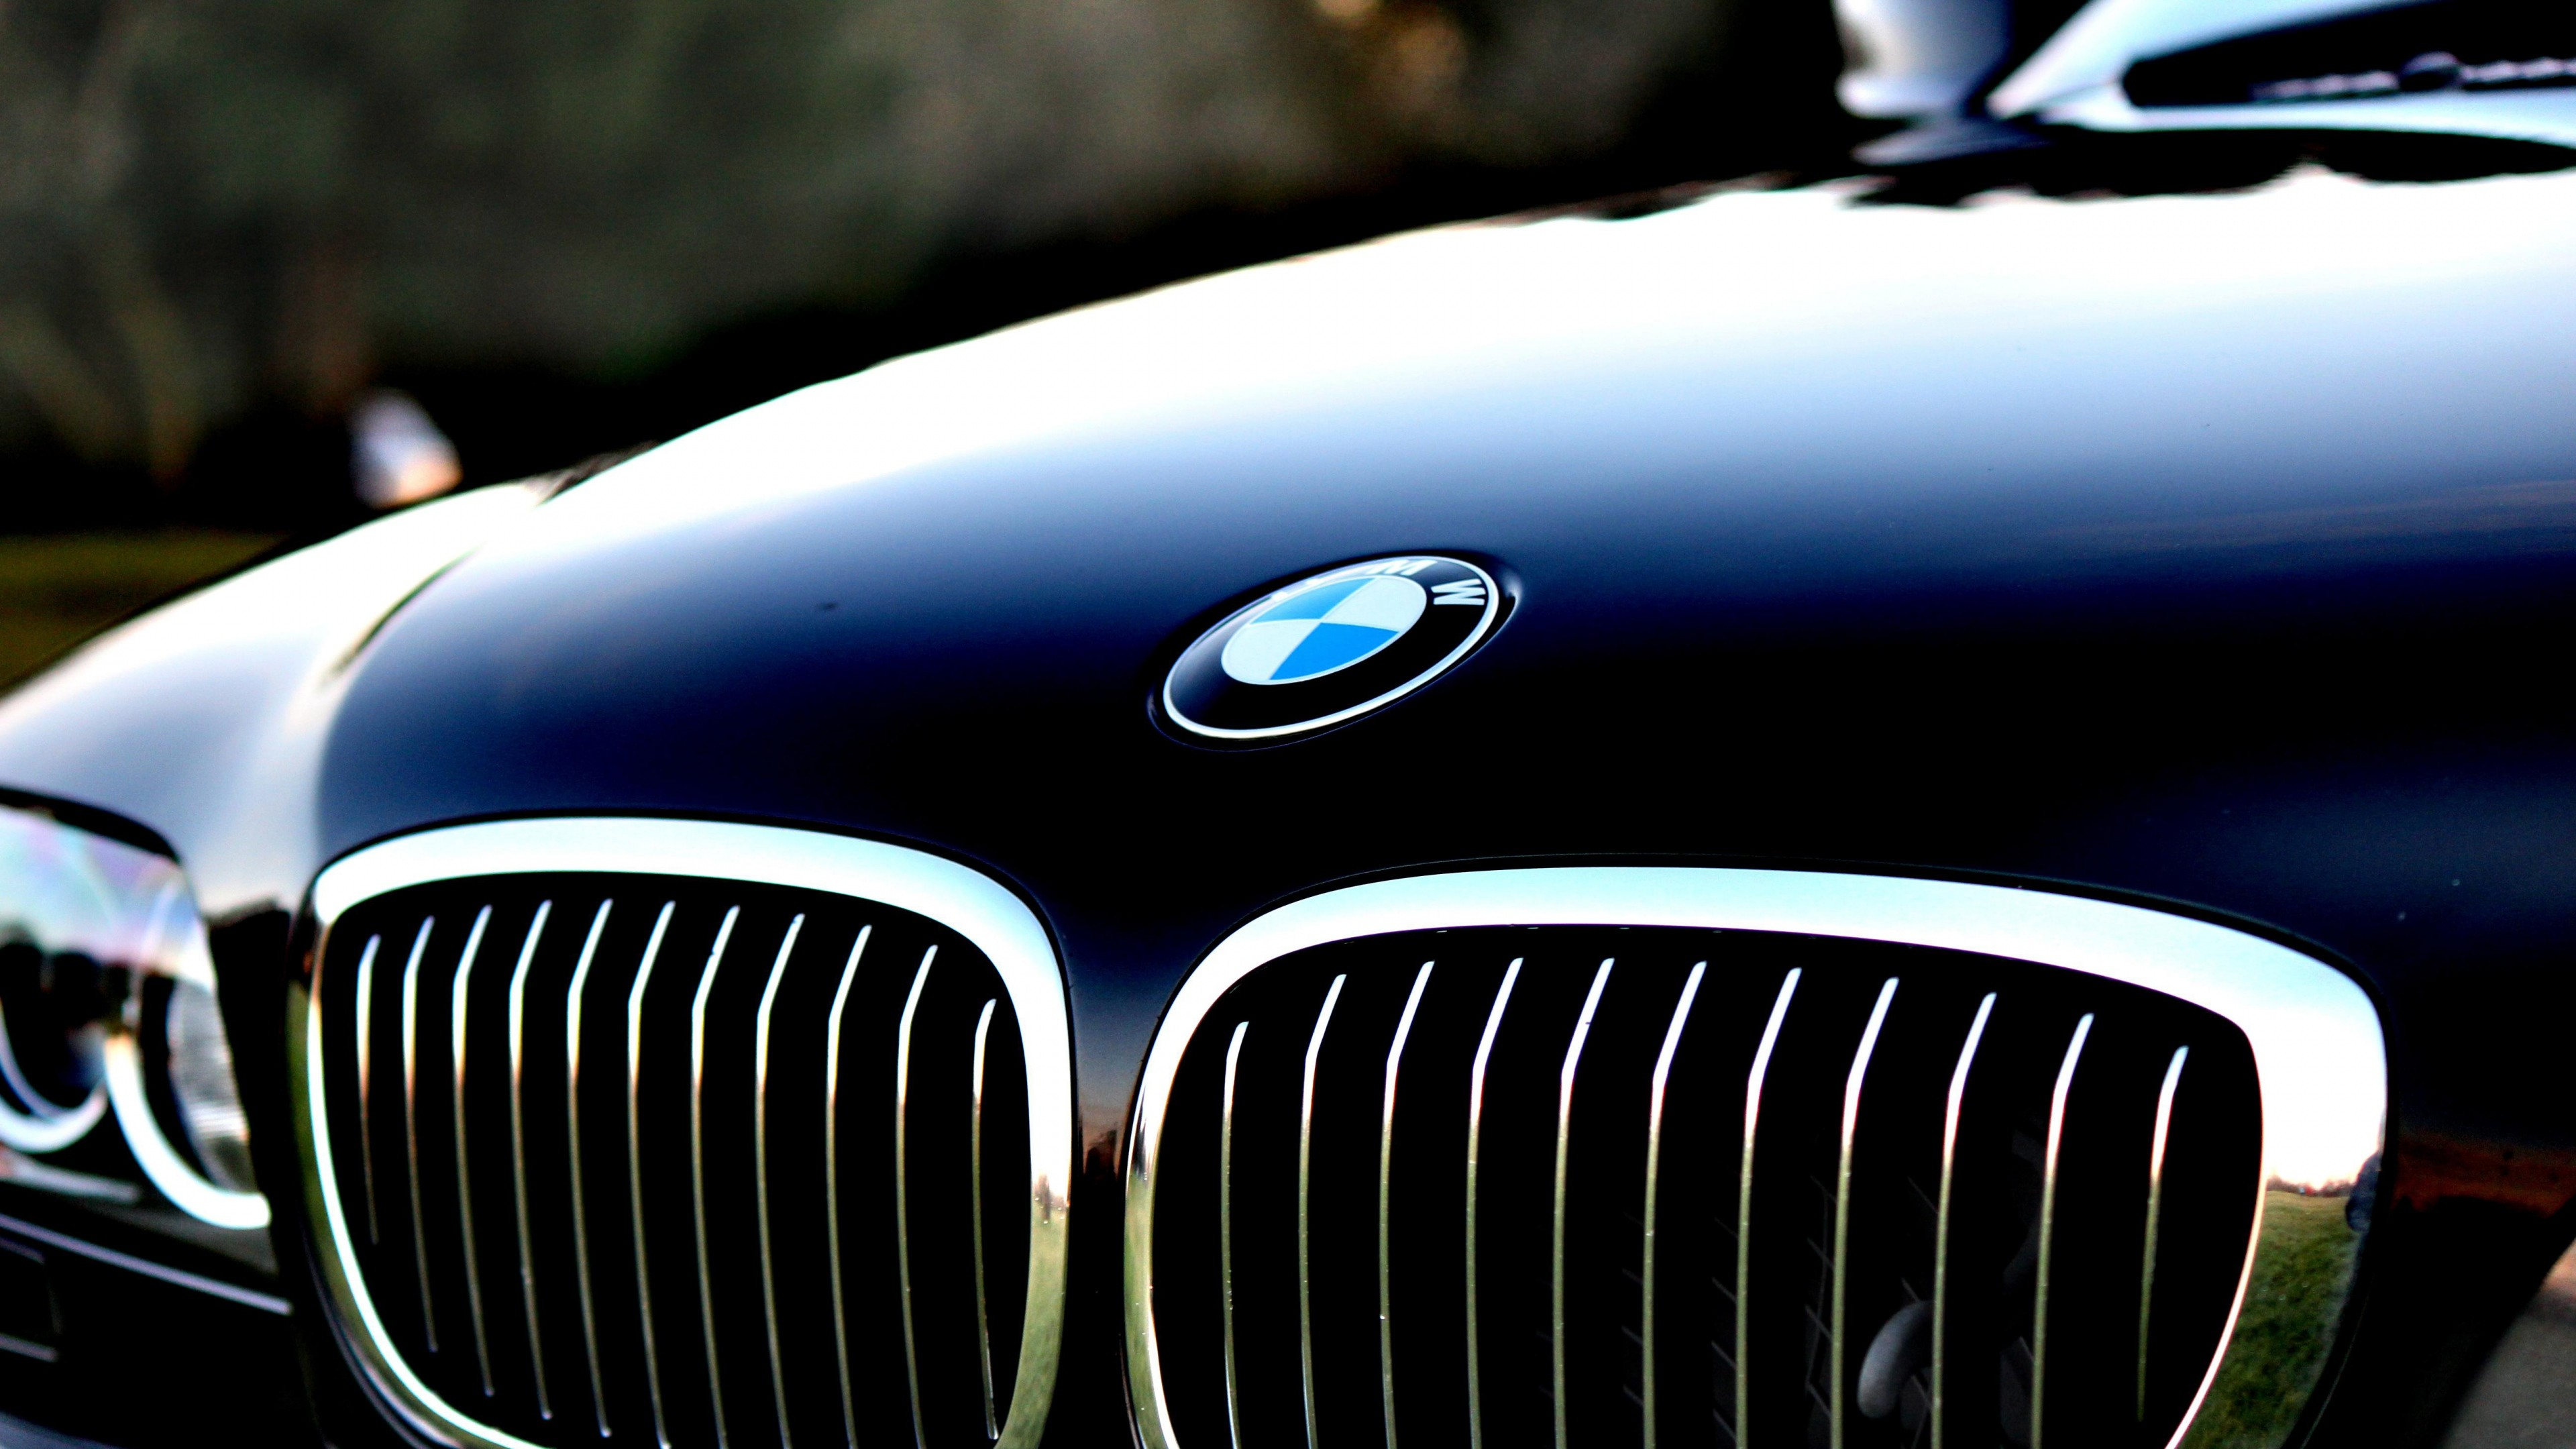 Bmw wallpaper 4k logo